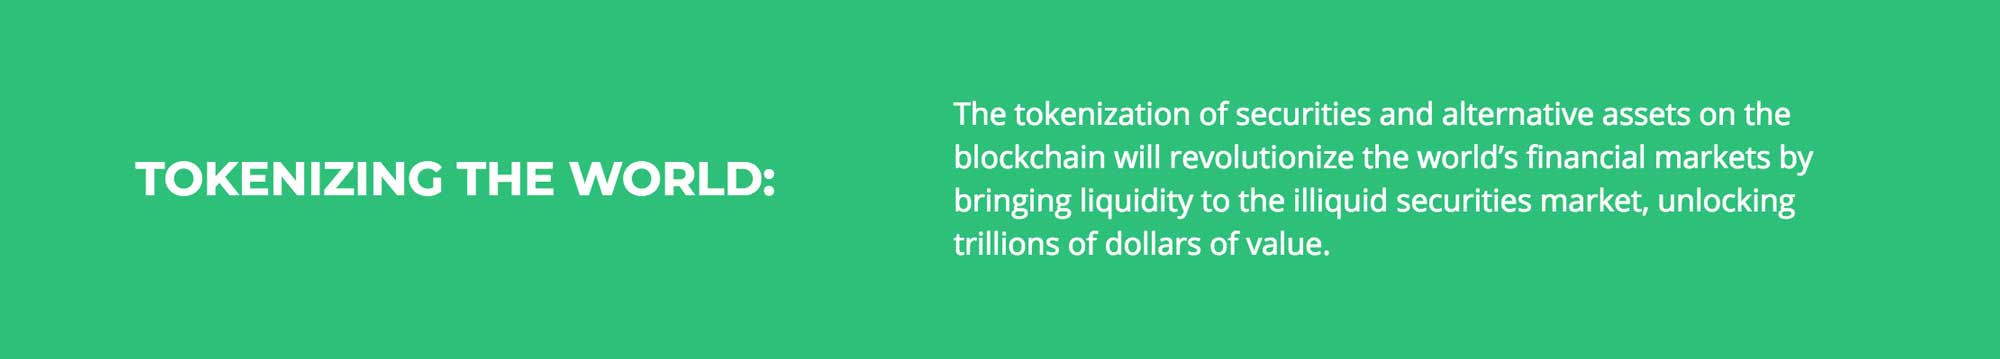 The tokenization of securities and alternative assets on the blockchain will revolutionize the world's financial markets by bringing liquidity to the illiquid securities market, unlocking trillions of dollars of value.